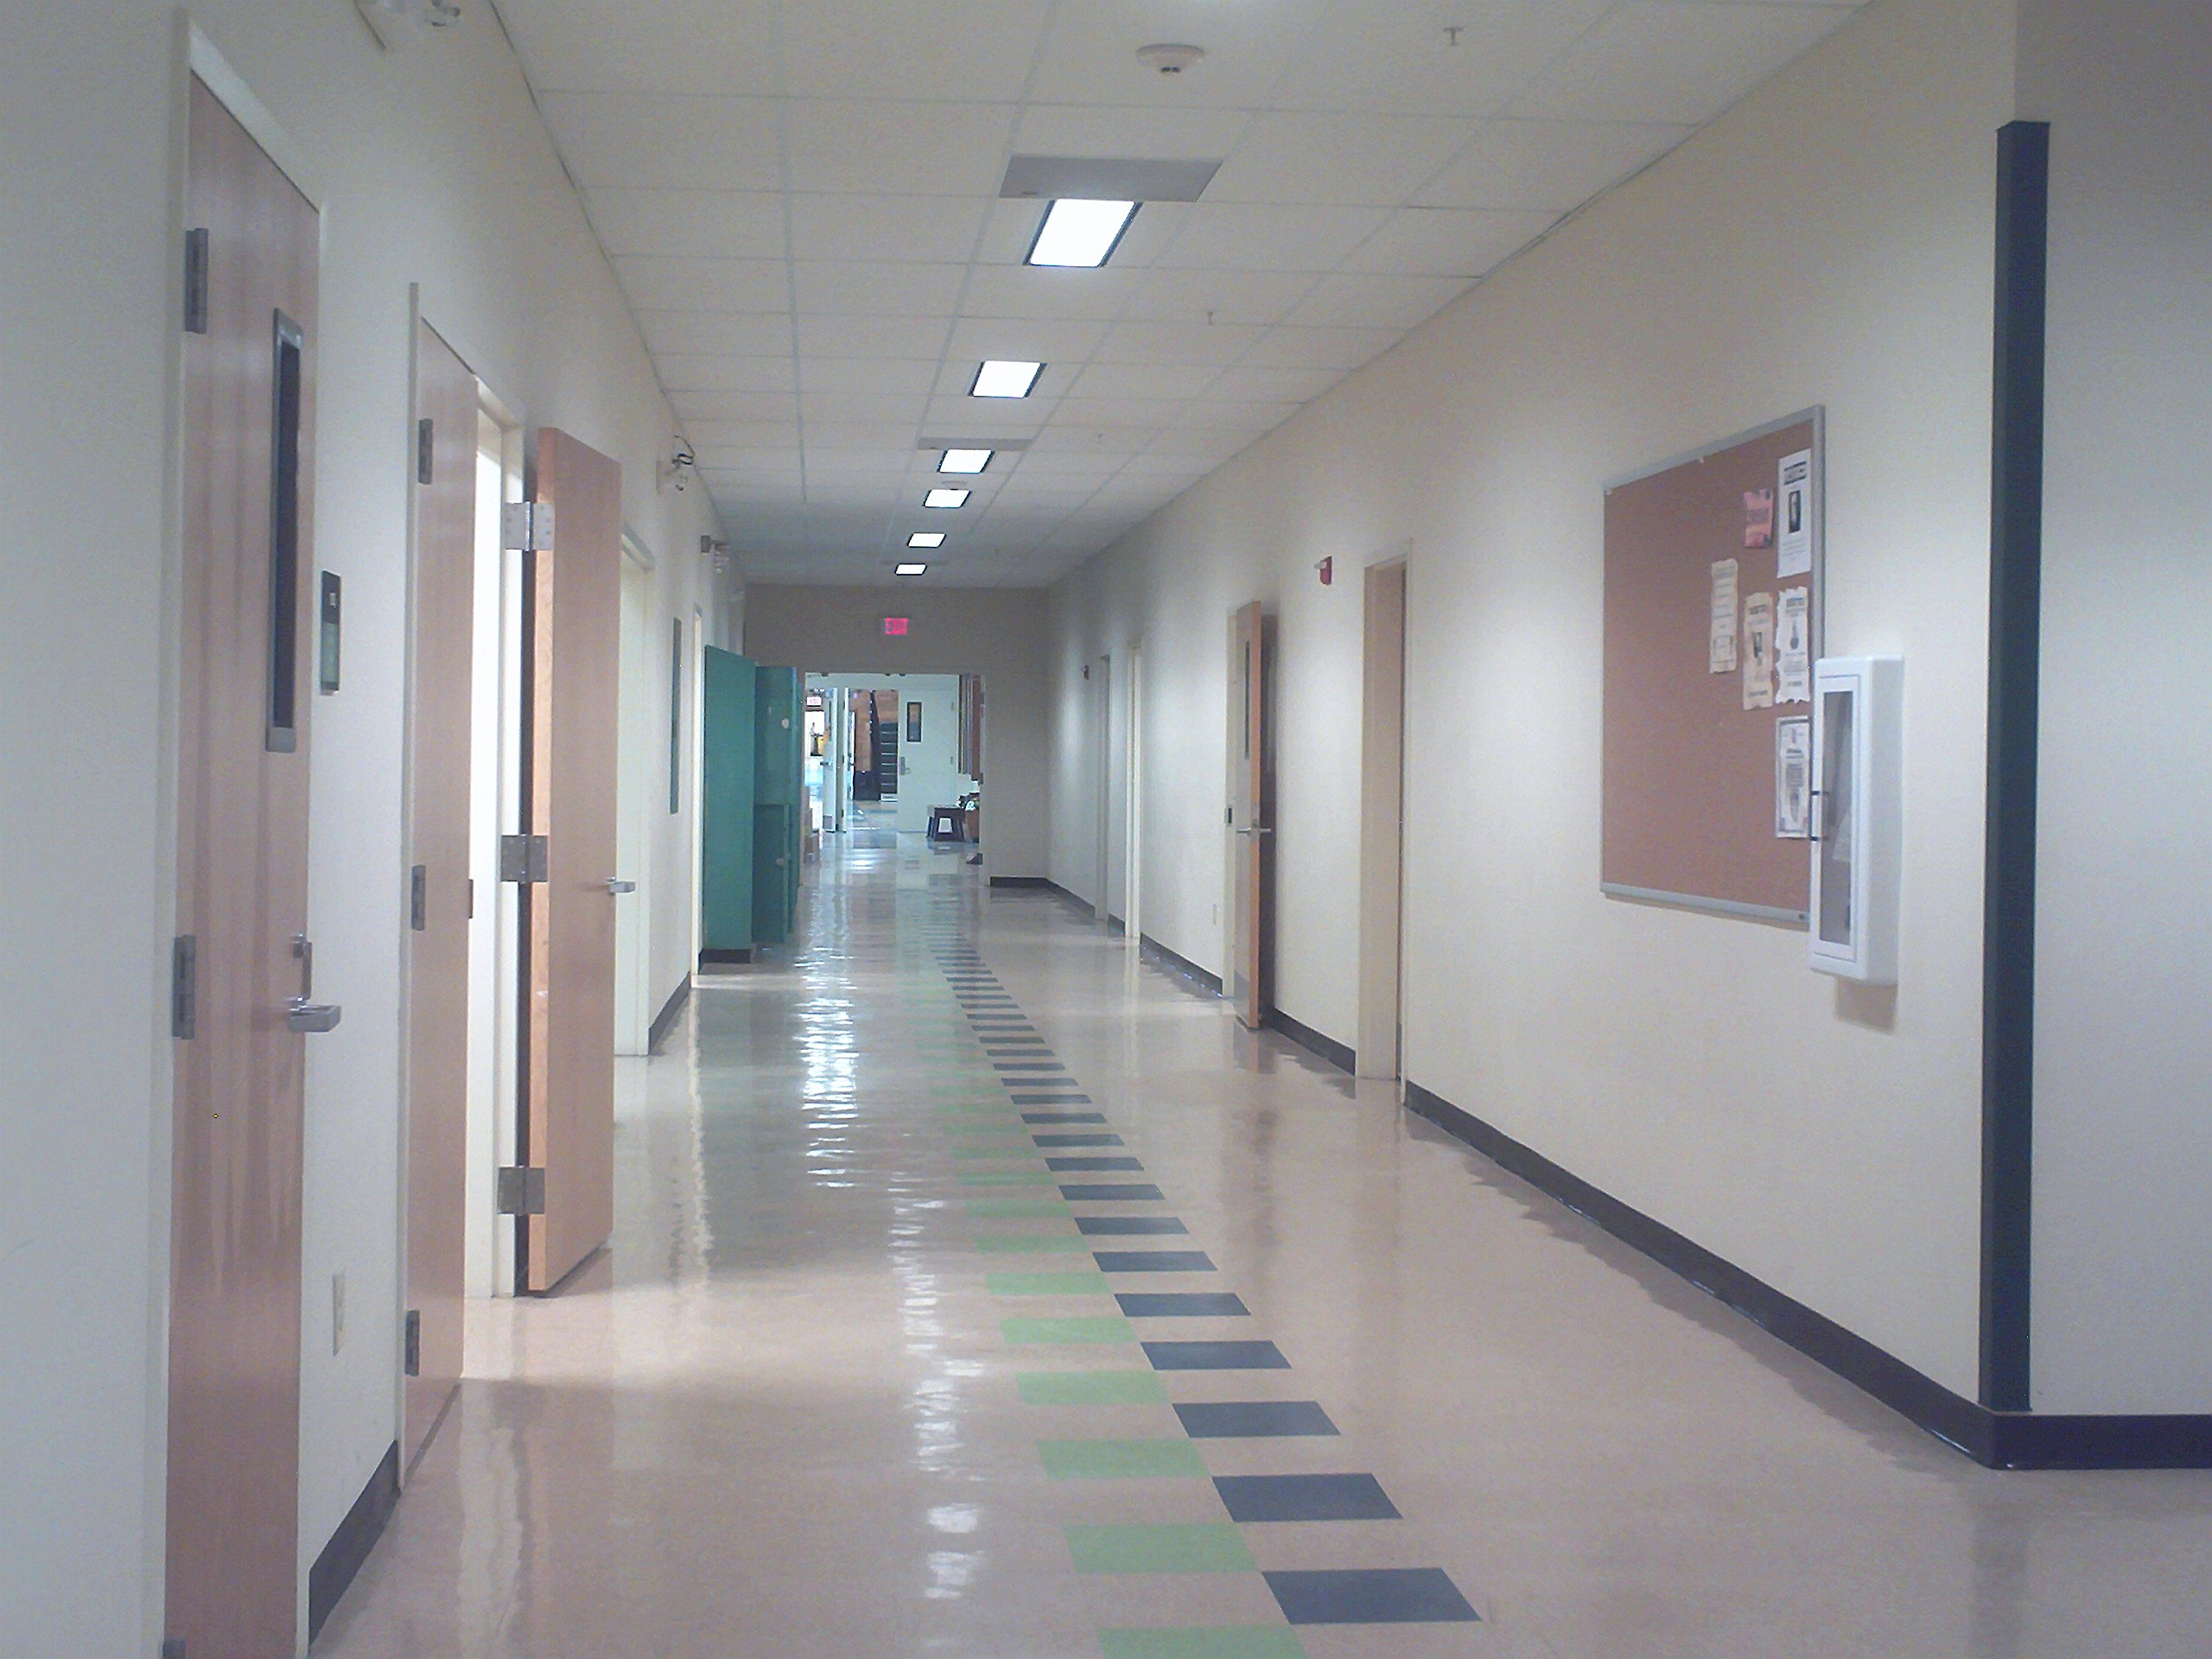 Lighitngs For New House File Penobscot Valley High School Main Hallway Jpg